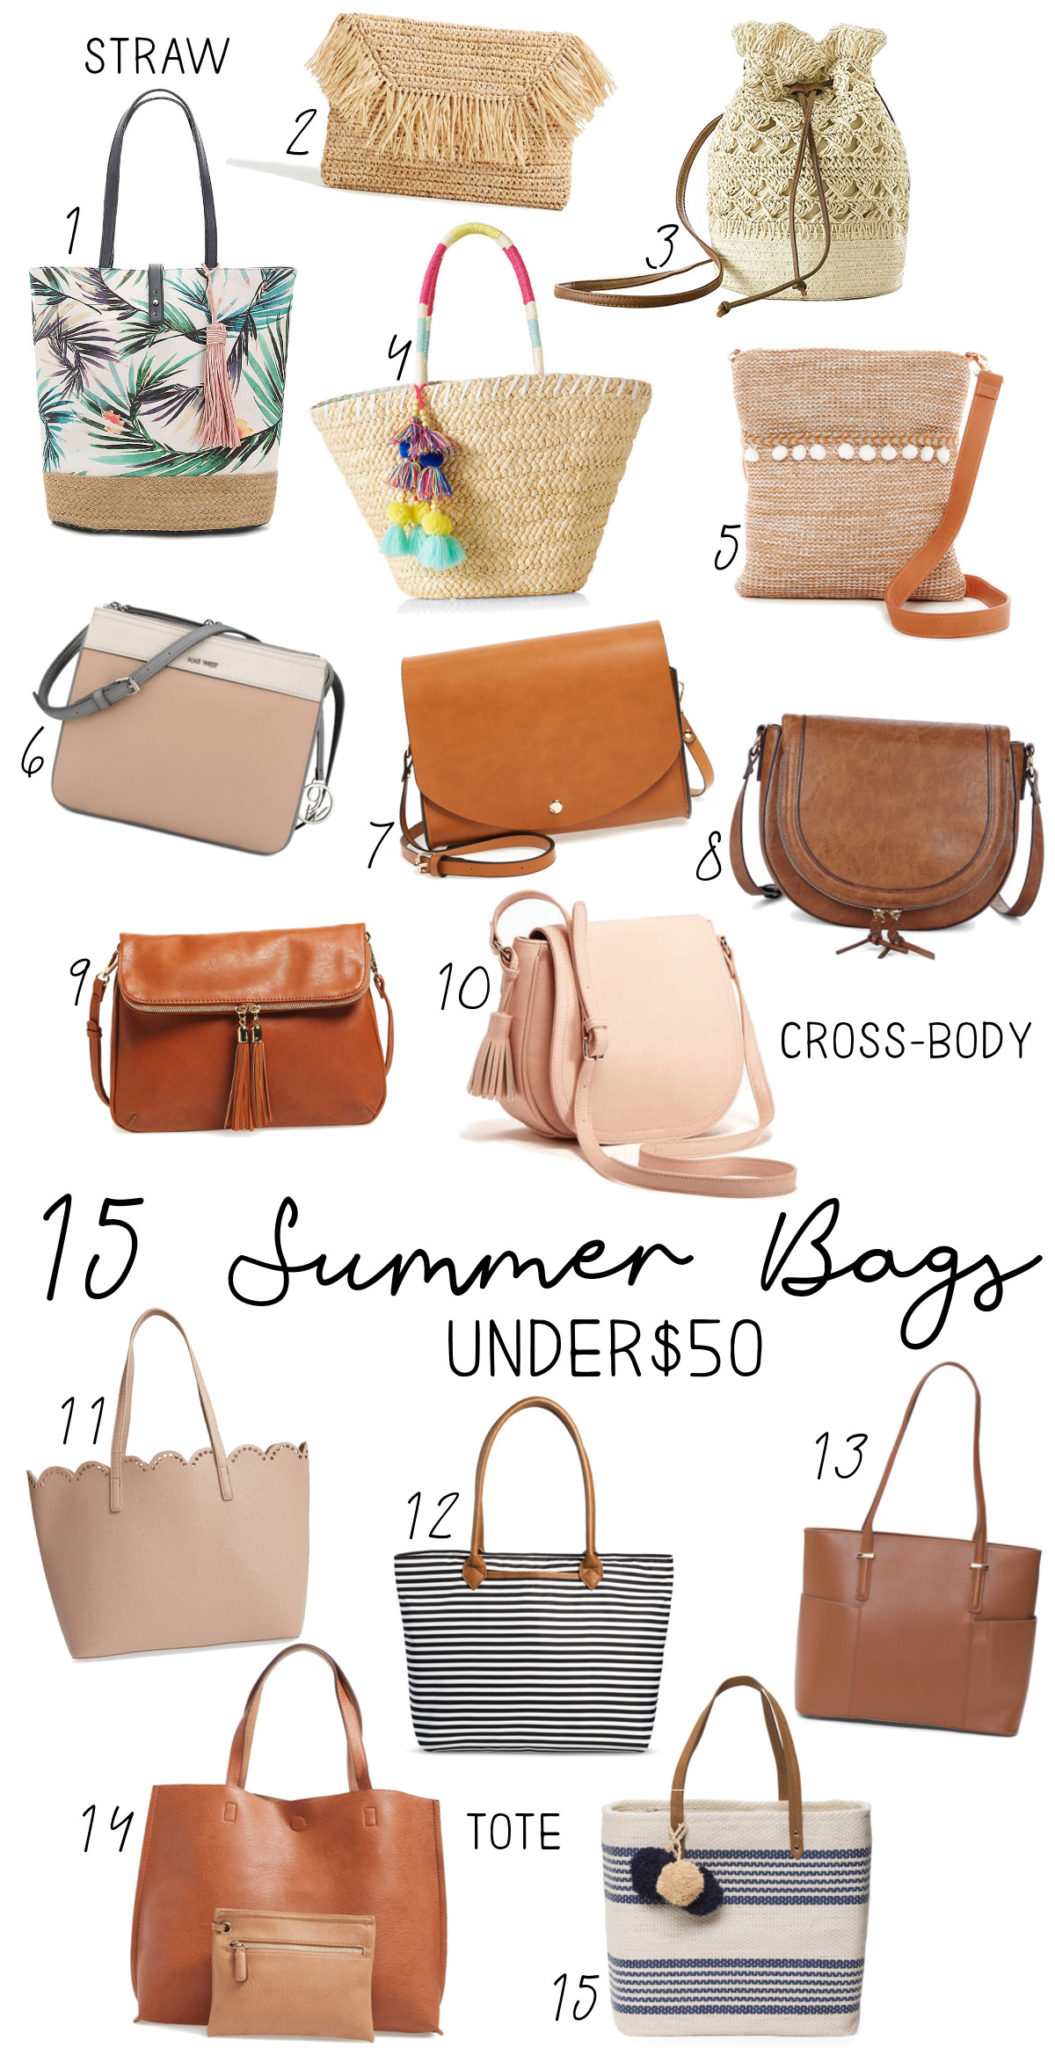 15 Summer Bags Under $50 - Affordable Straw Bags, Crossbody Bags, and Tote Bags!